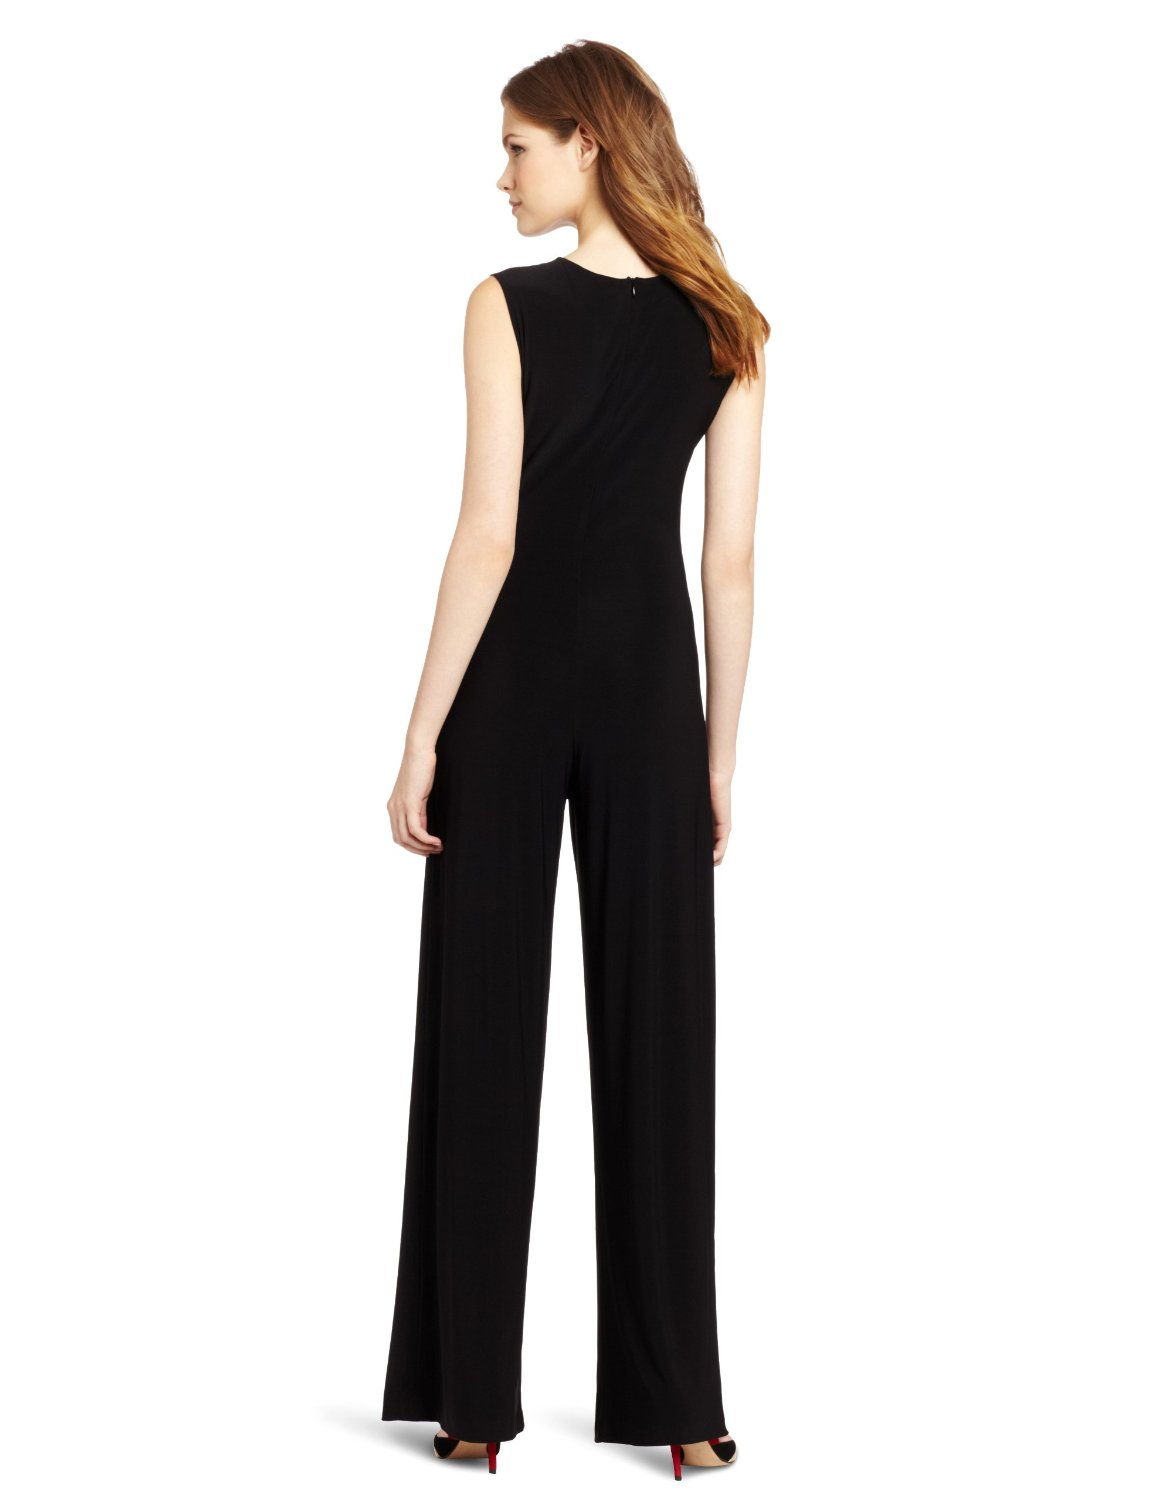 We can't get enough of our latest collection of jumpsuits and rompers for every occasion. Whether you want a sexy trimmed jumpsuit that hugs all the right curves or a lace romper that shows off some leg.